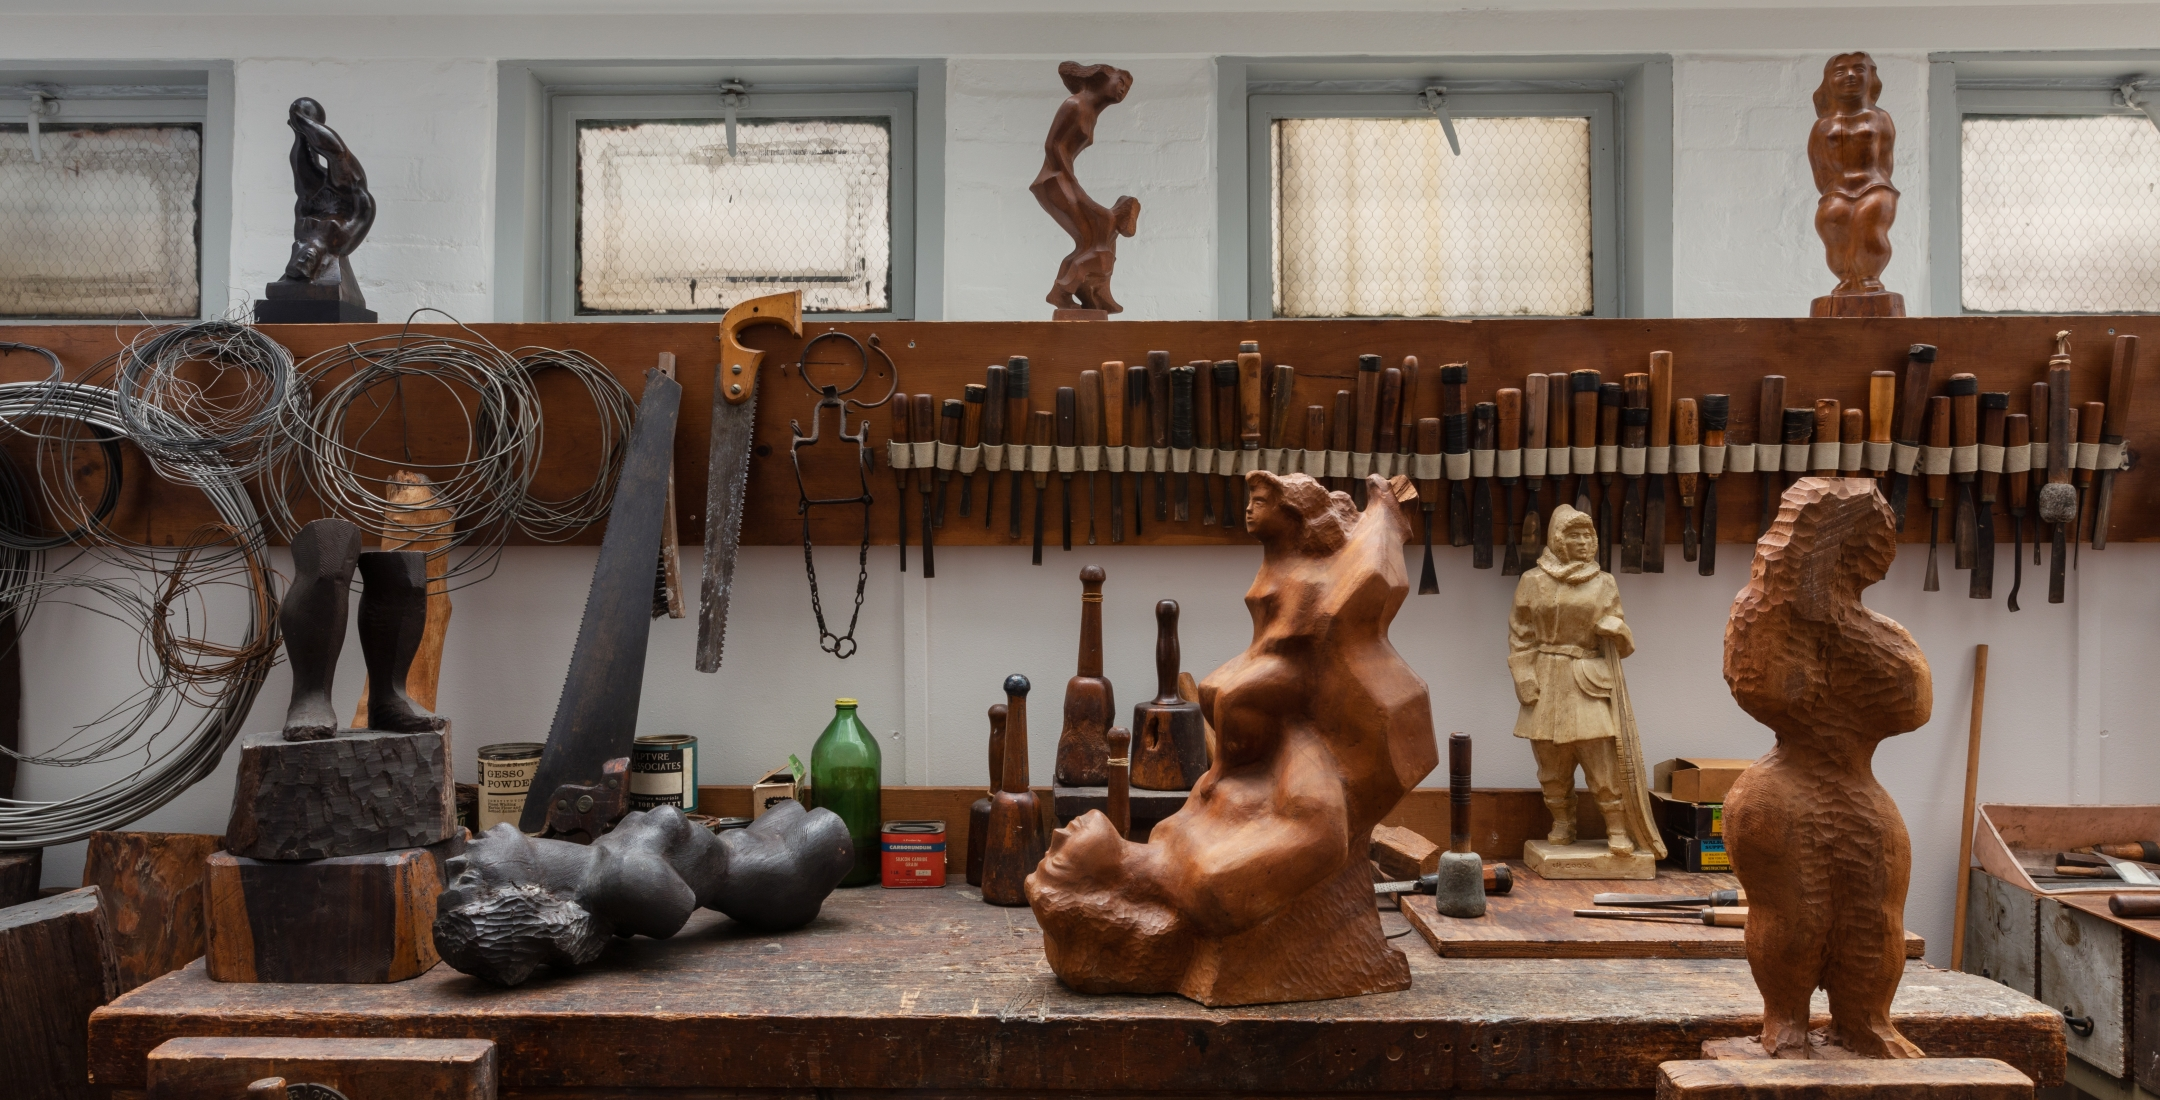 Photo of Chaim Gross' workbench. In the background there is a row of sculpting tools, wires, and small sculptures. In the foreground, on the workbench, there are a few larger wooden sculptures of the human figure.